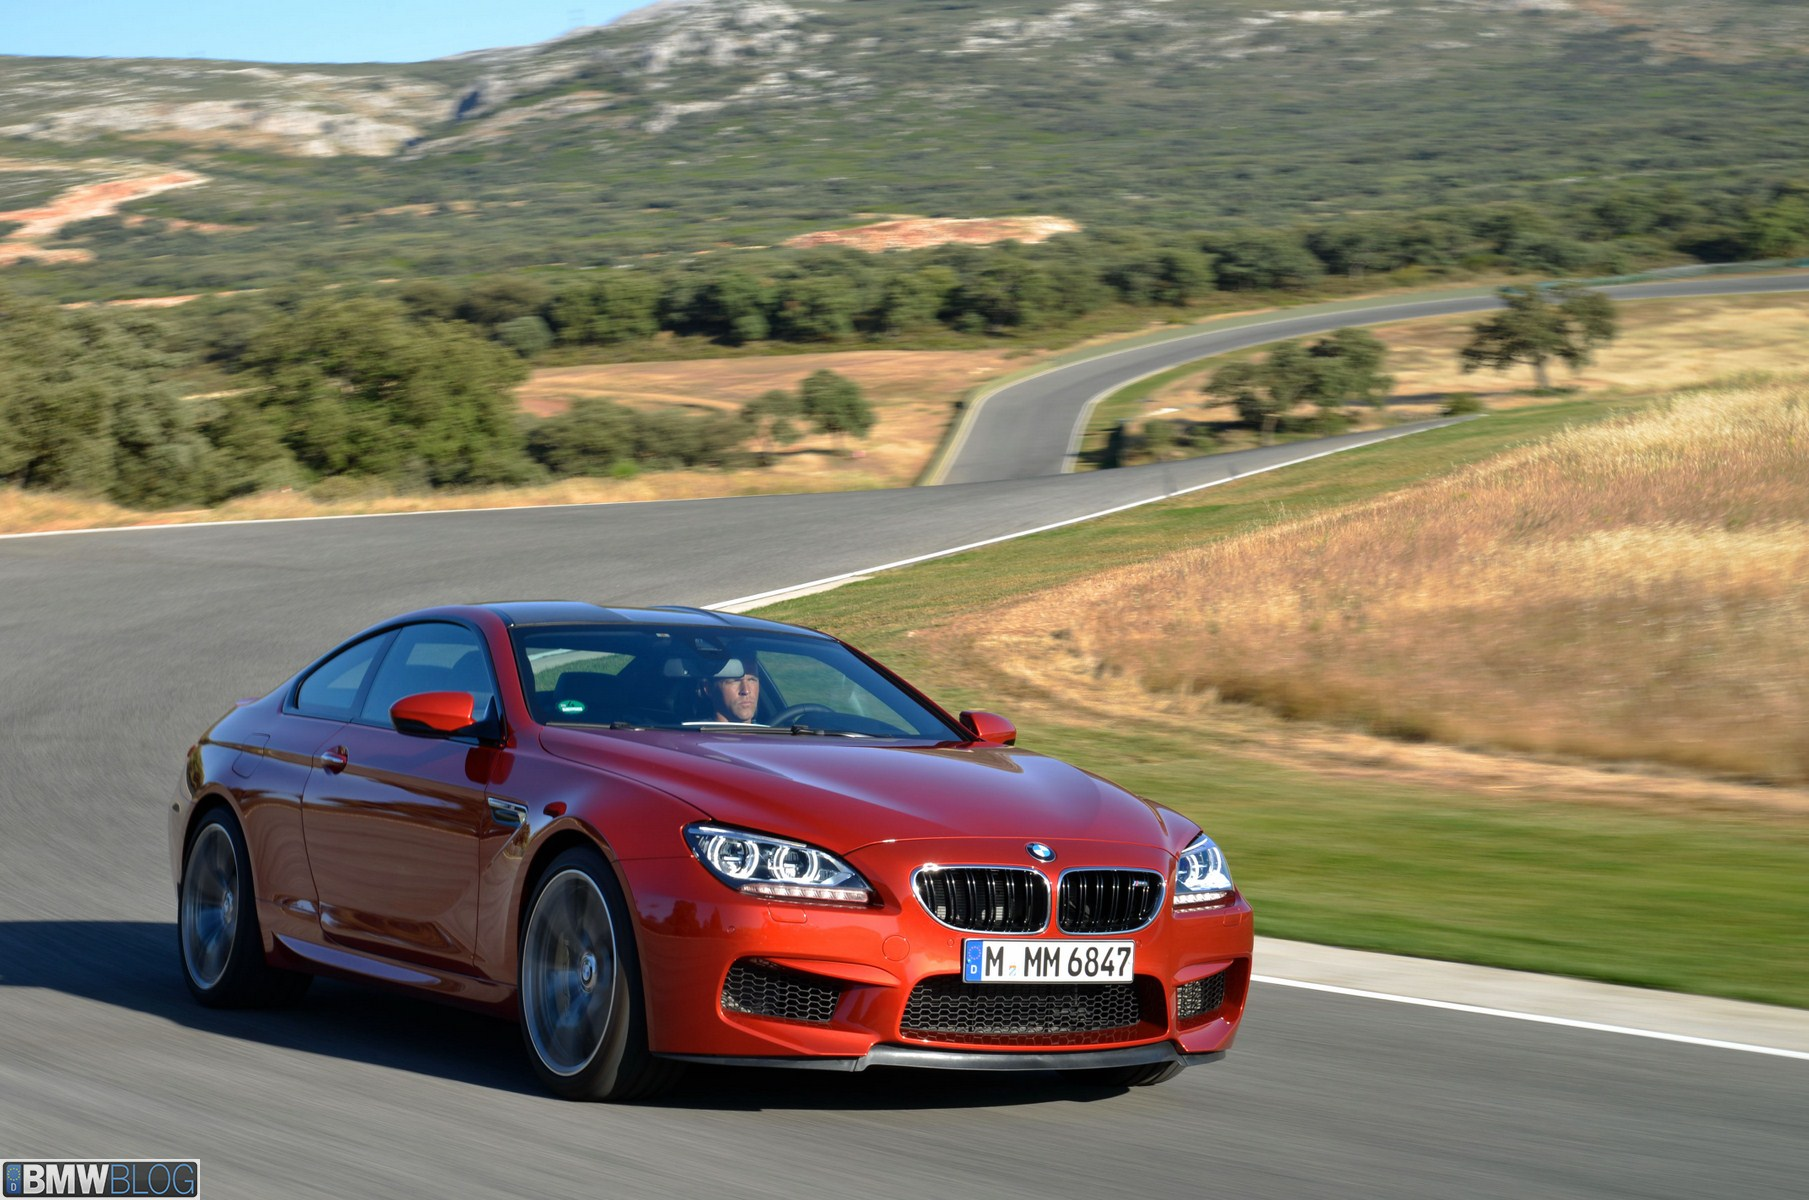 2013 bmw m6 coupe gallery 661